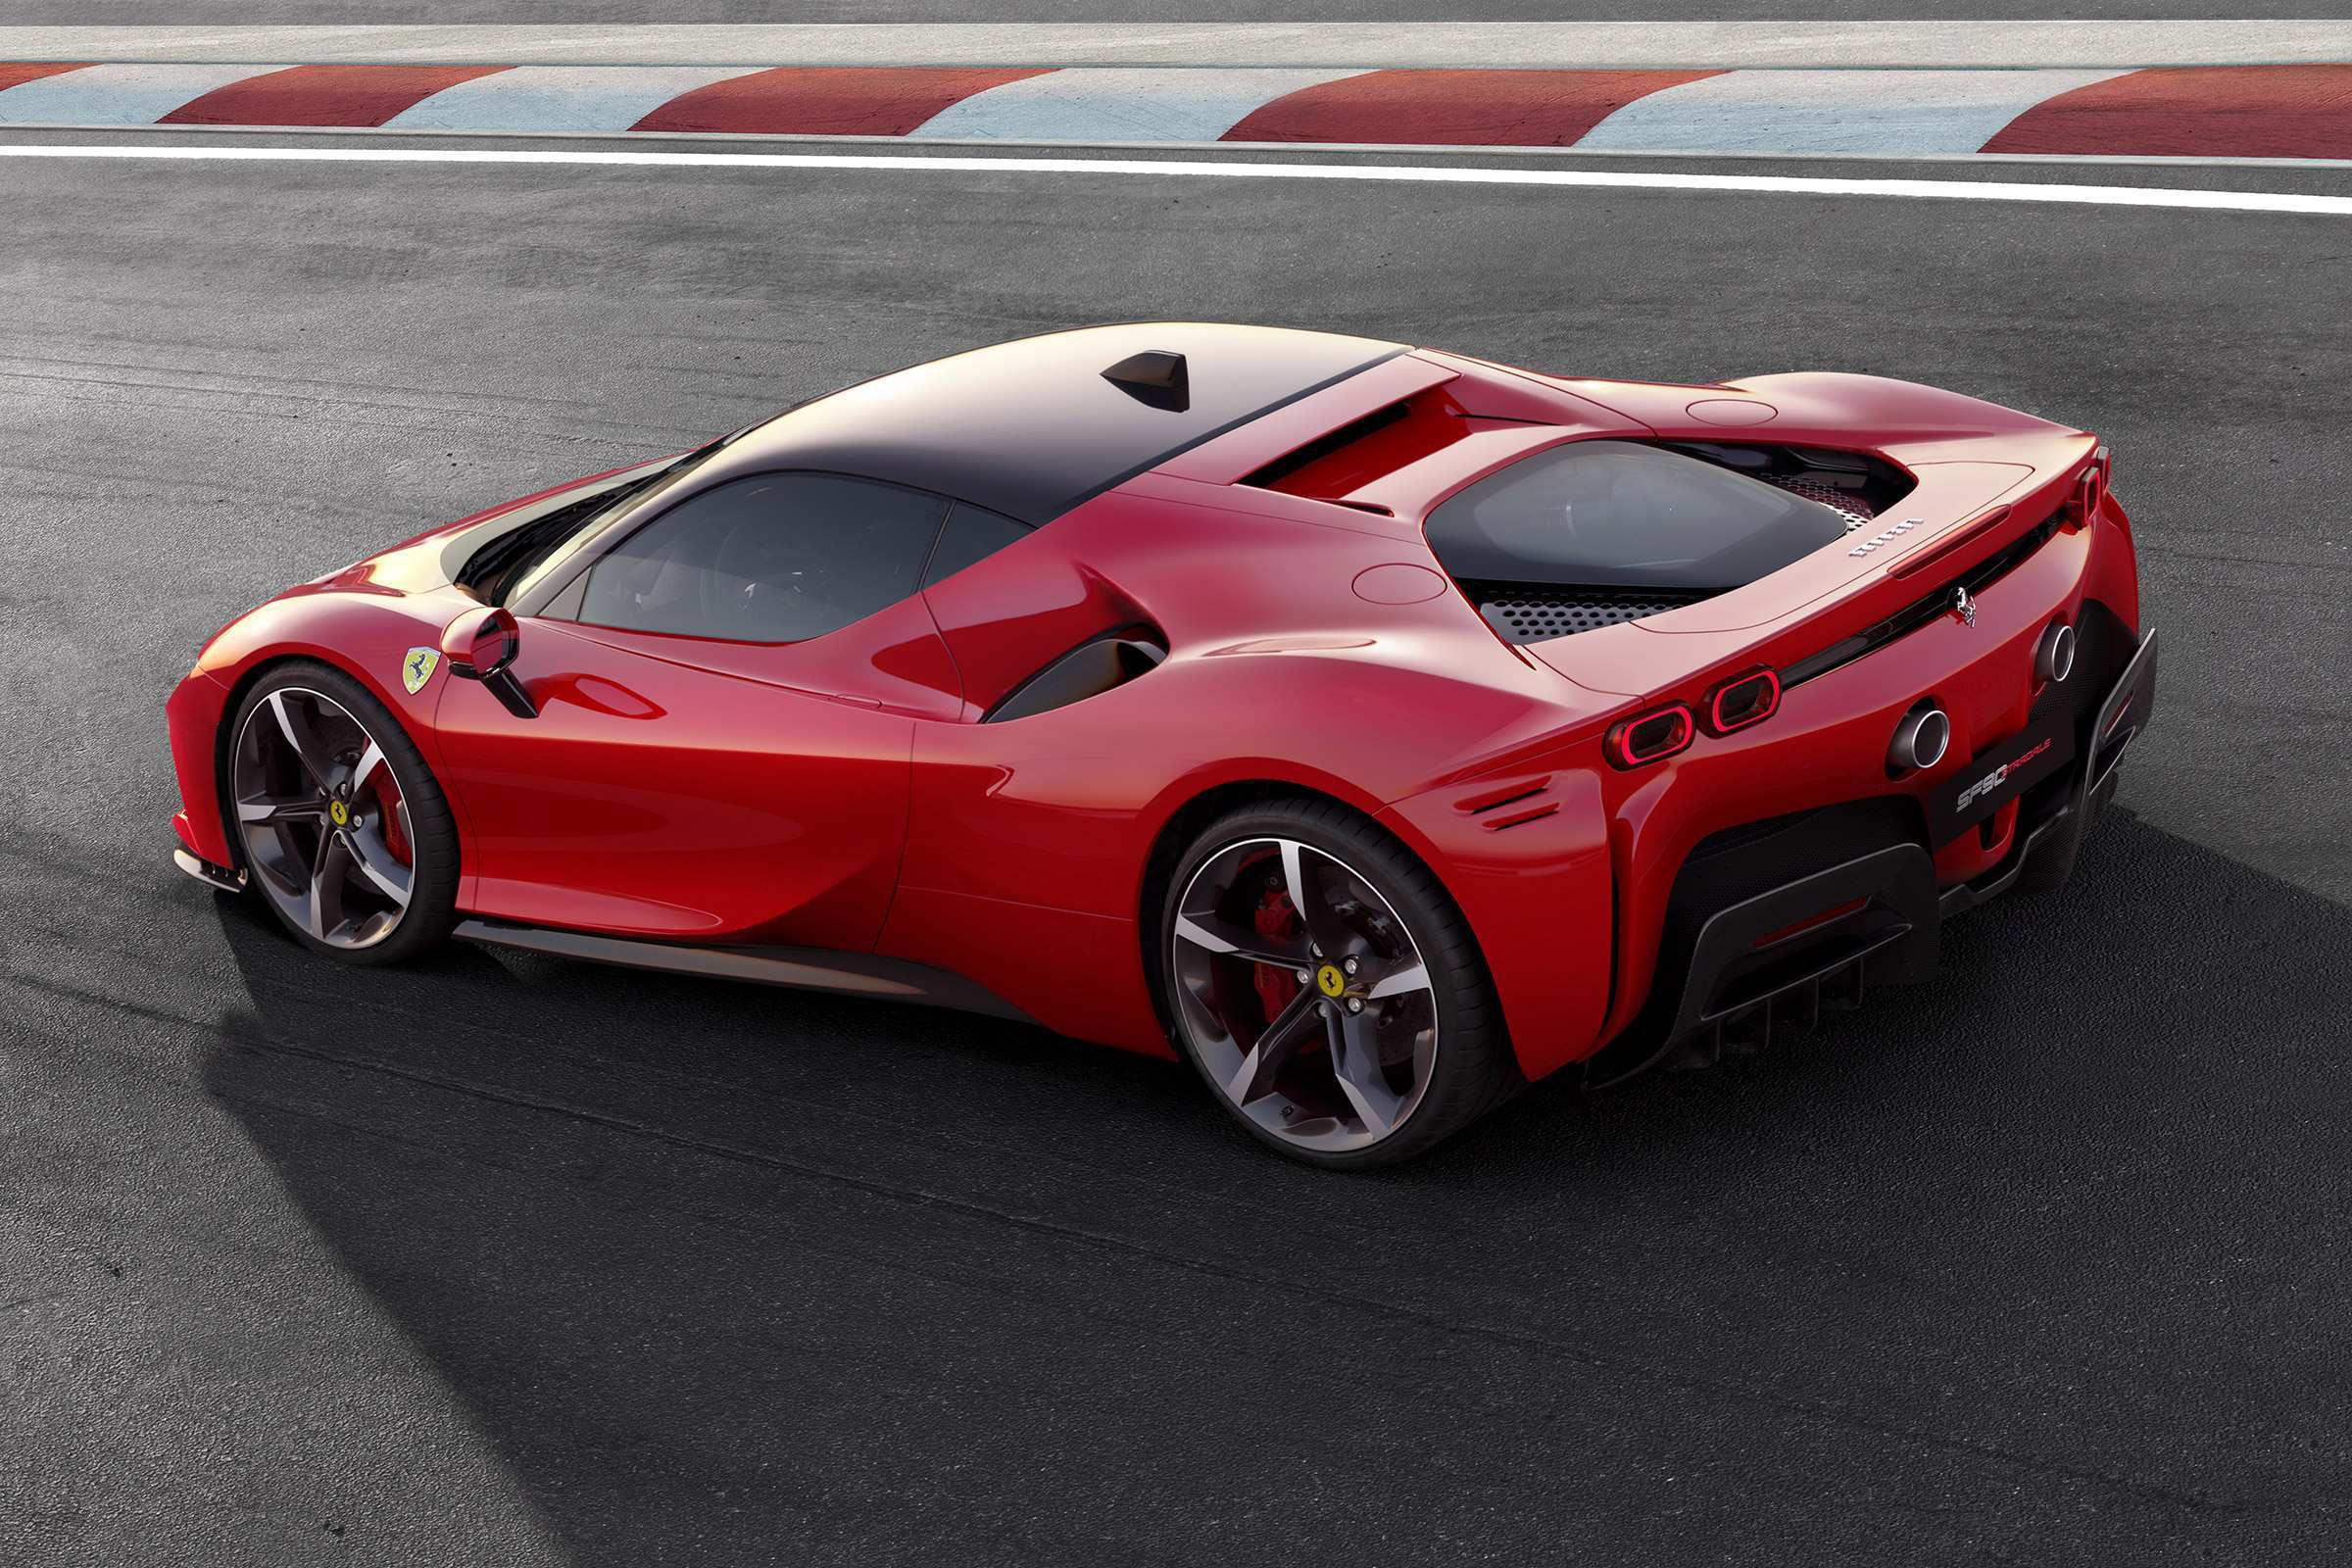 35 All New 2019 Ferrari Models Images